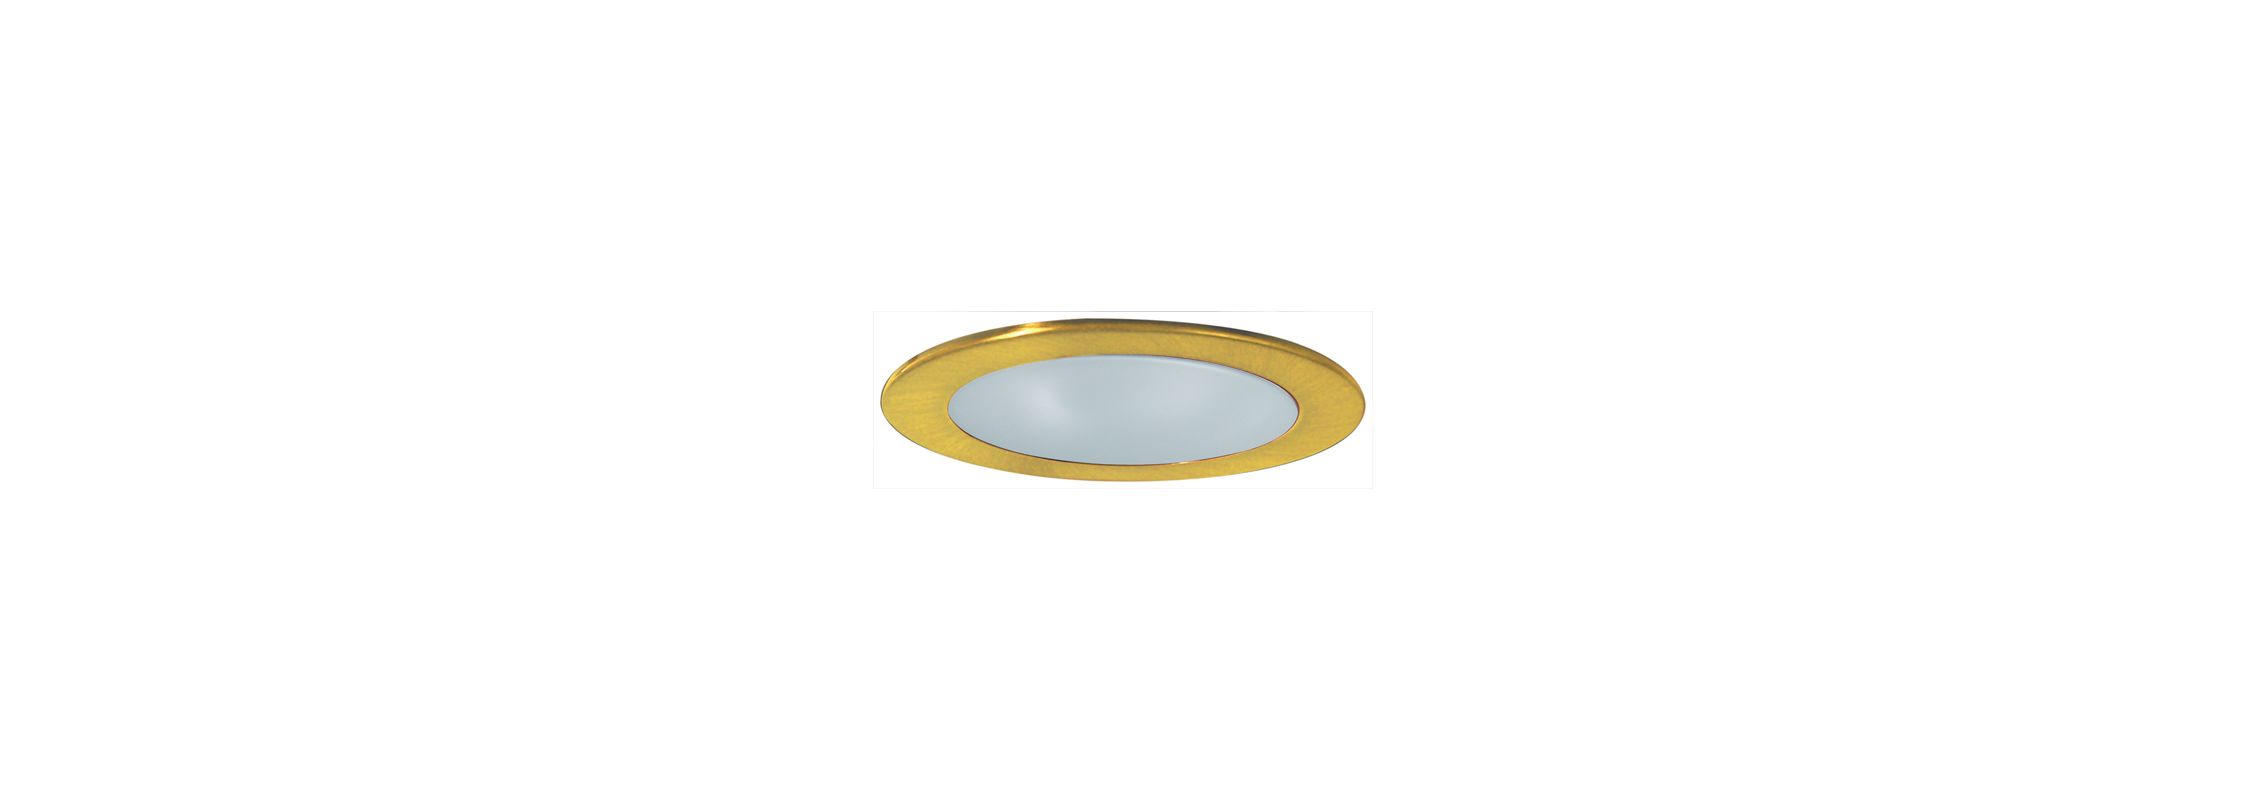 "Elco EL9112 4"" CFL Shower Trim with Frosted Lens and Reflector Gold"